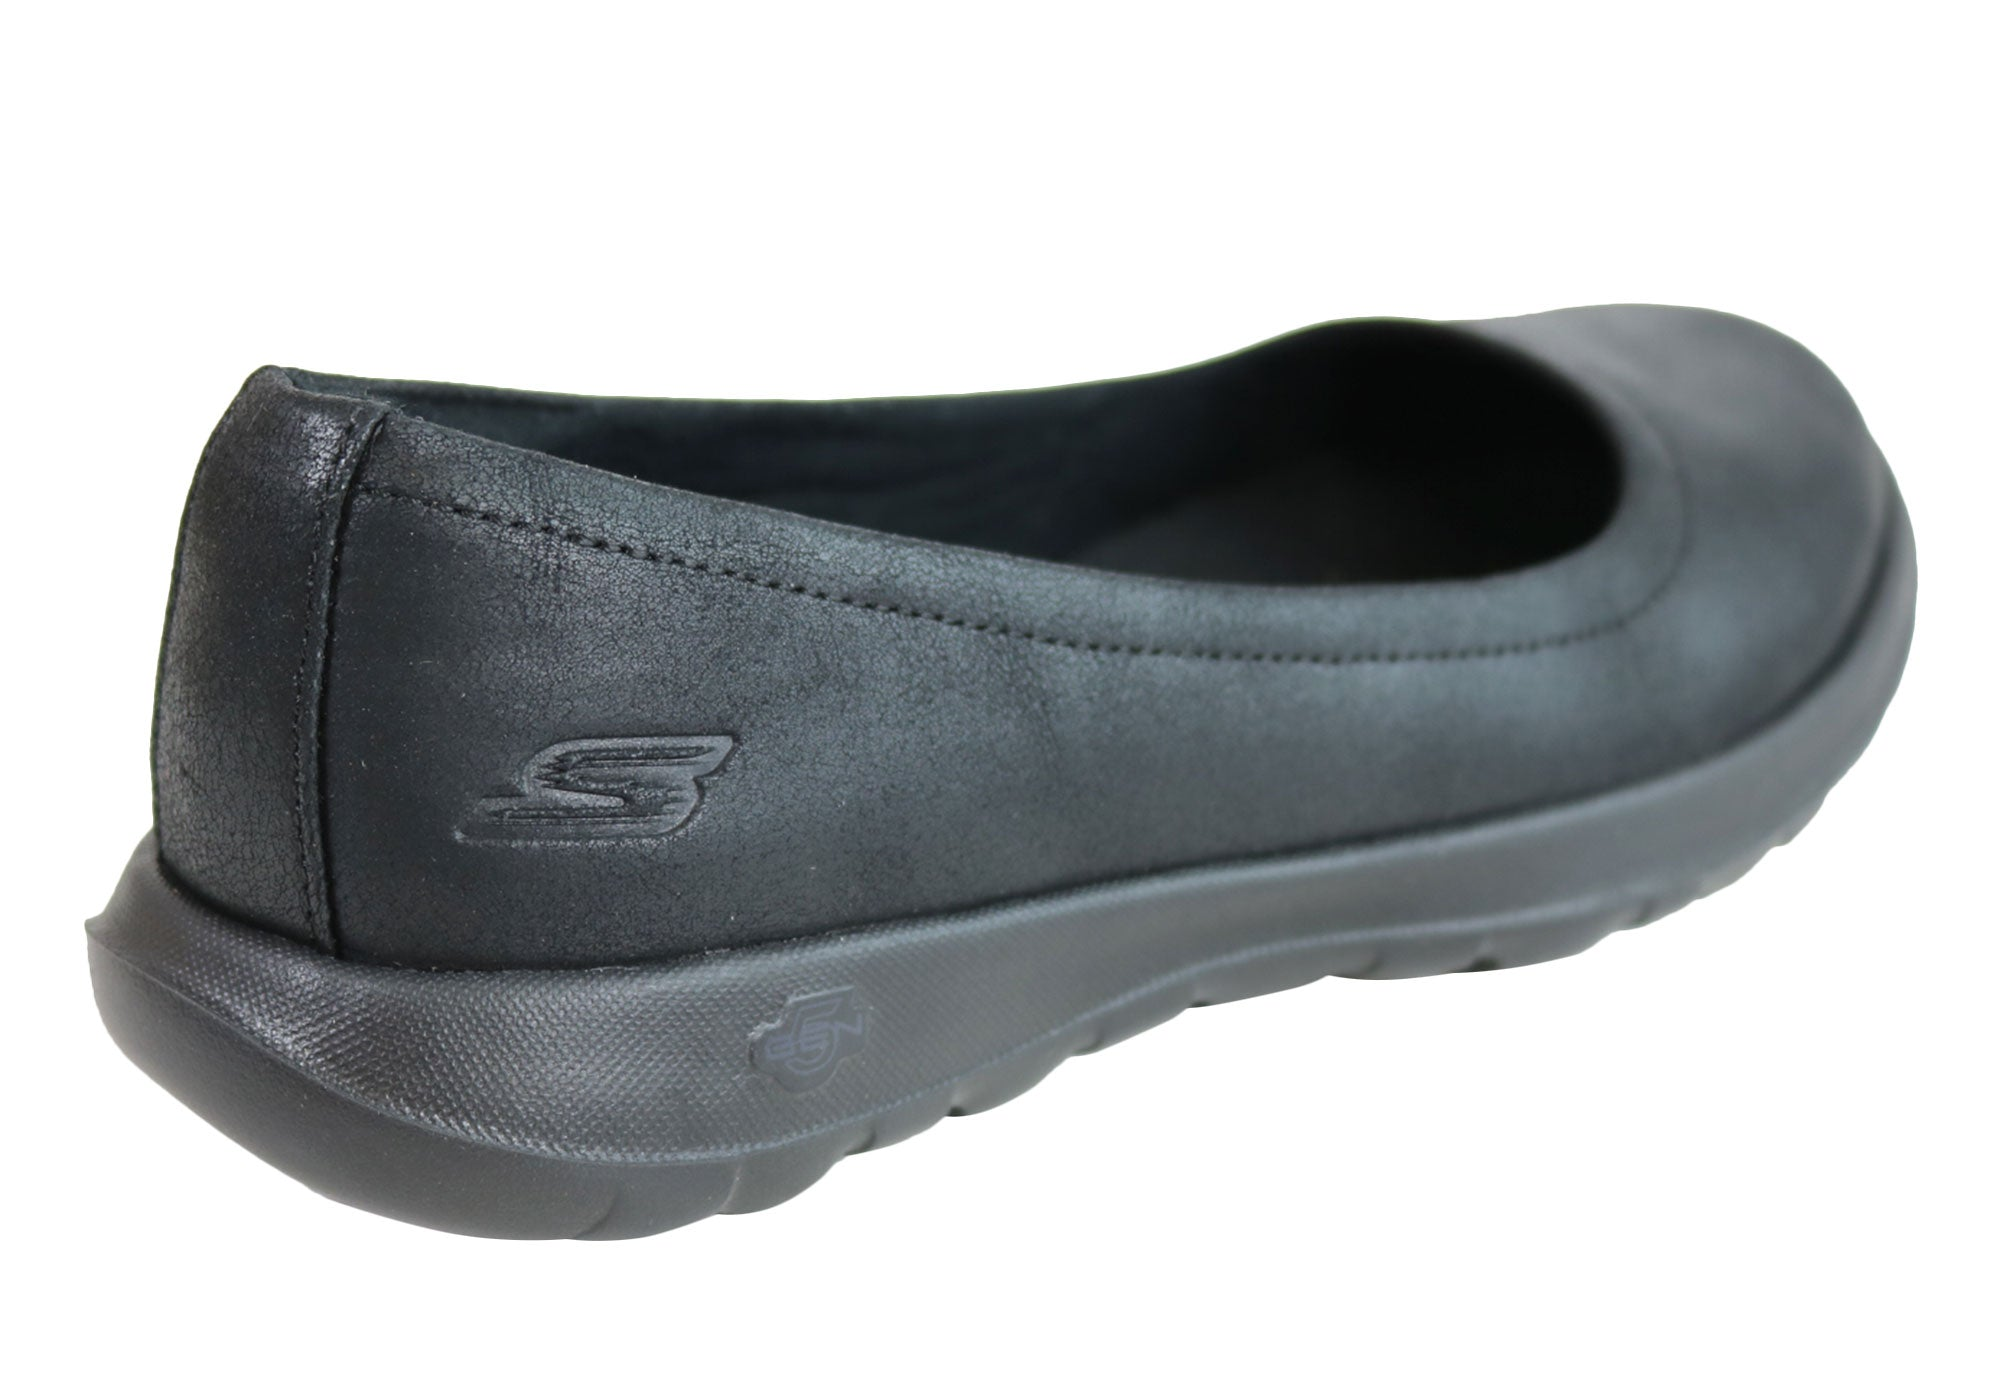 cc2ed9d96a6 Home Skechers Womens Go Walk Lite Gem Comfort Cushioned Ballet Flat Shoes.  Black · Black · Black · Black · Black ...